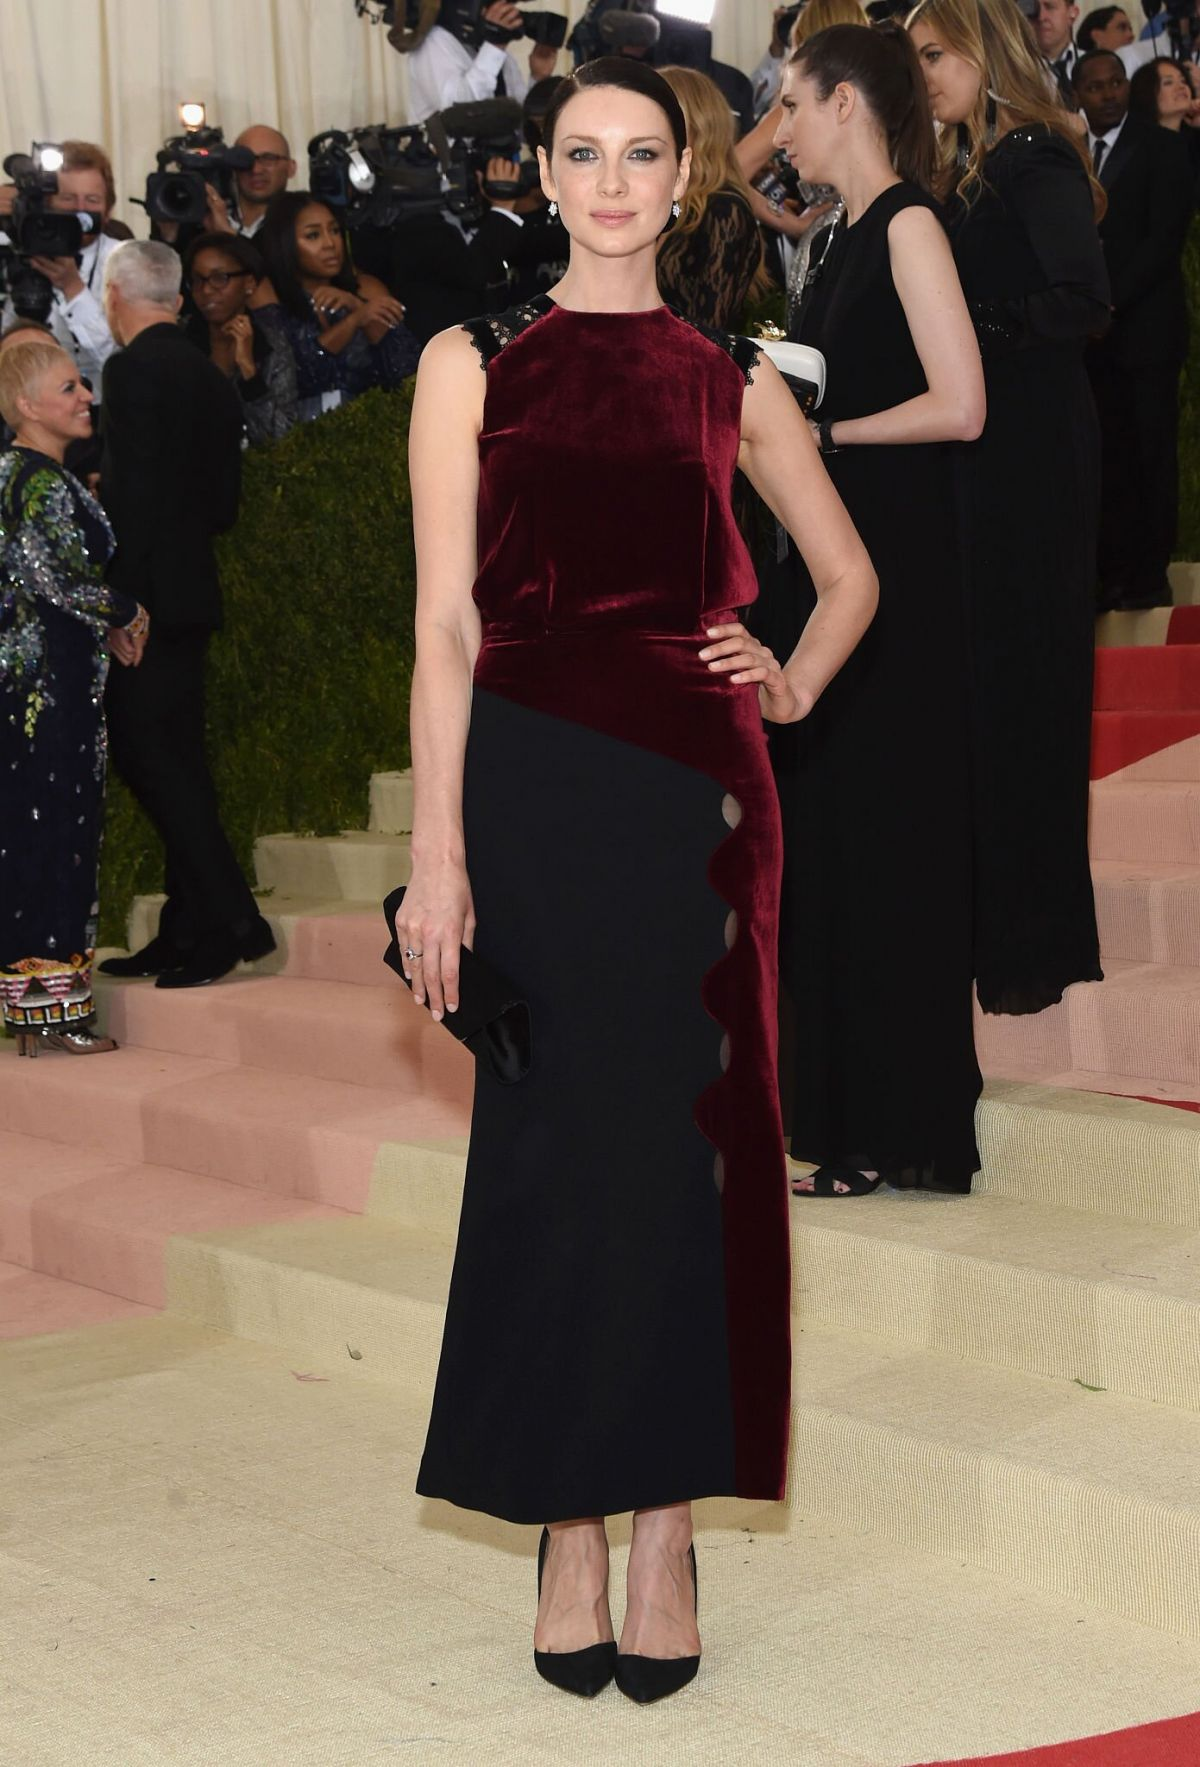 CAITRIONA BALFE at Costume Institute Gala 2016 in New York 05/02/2016